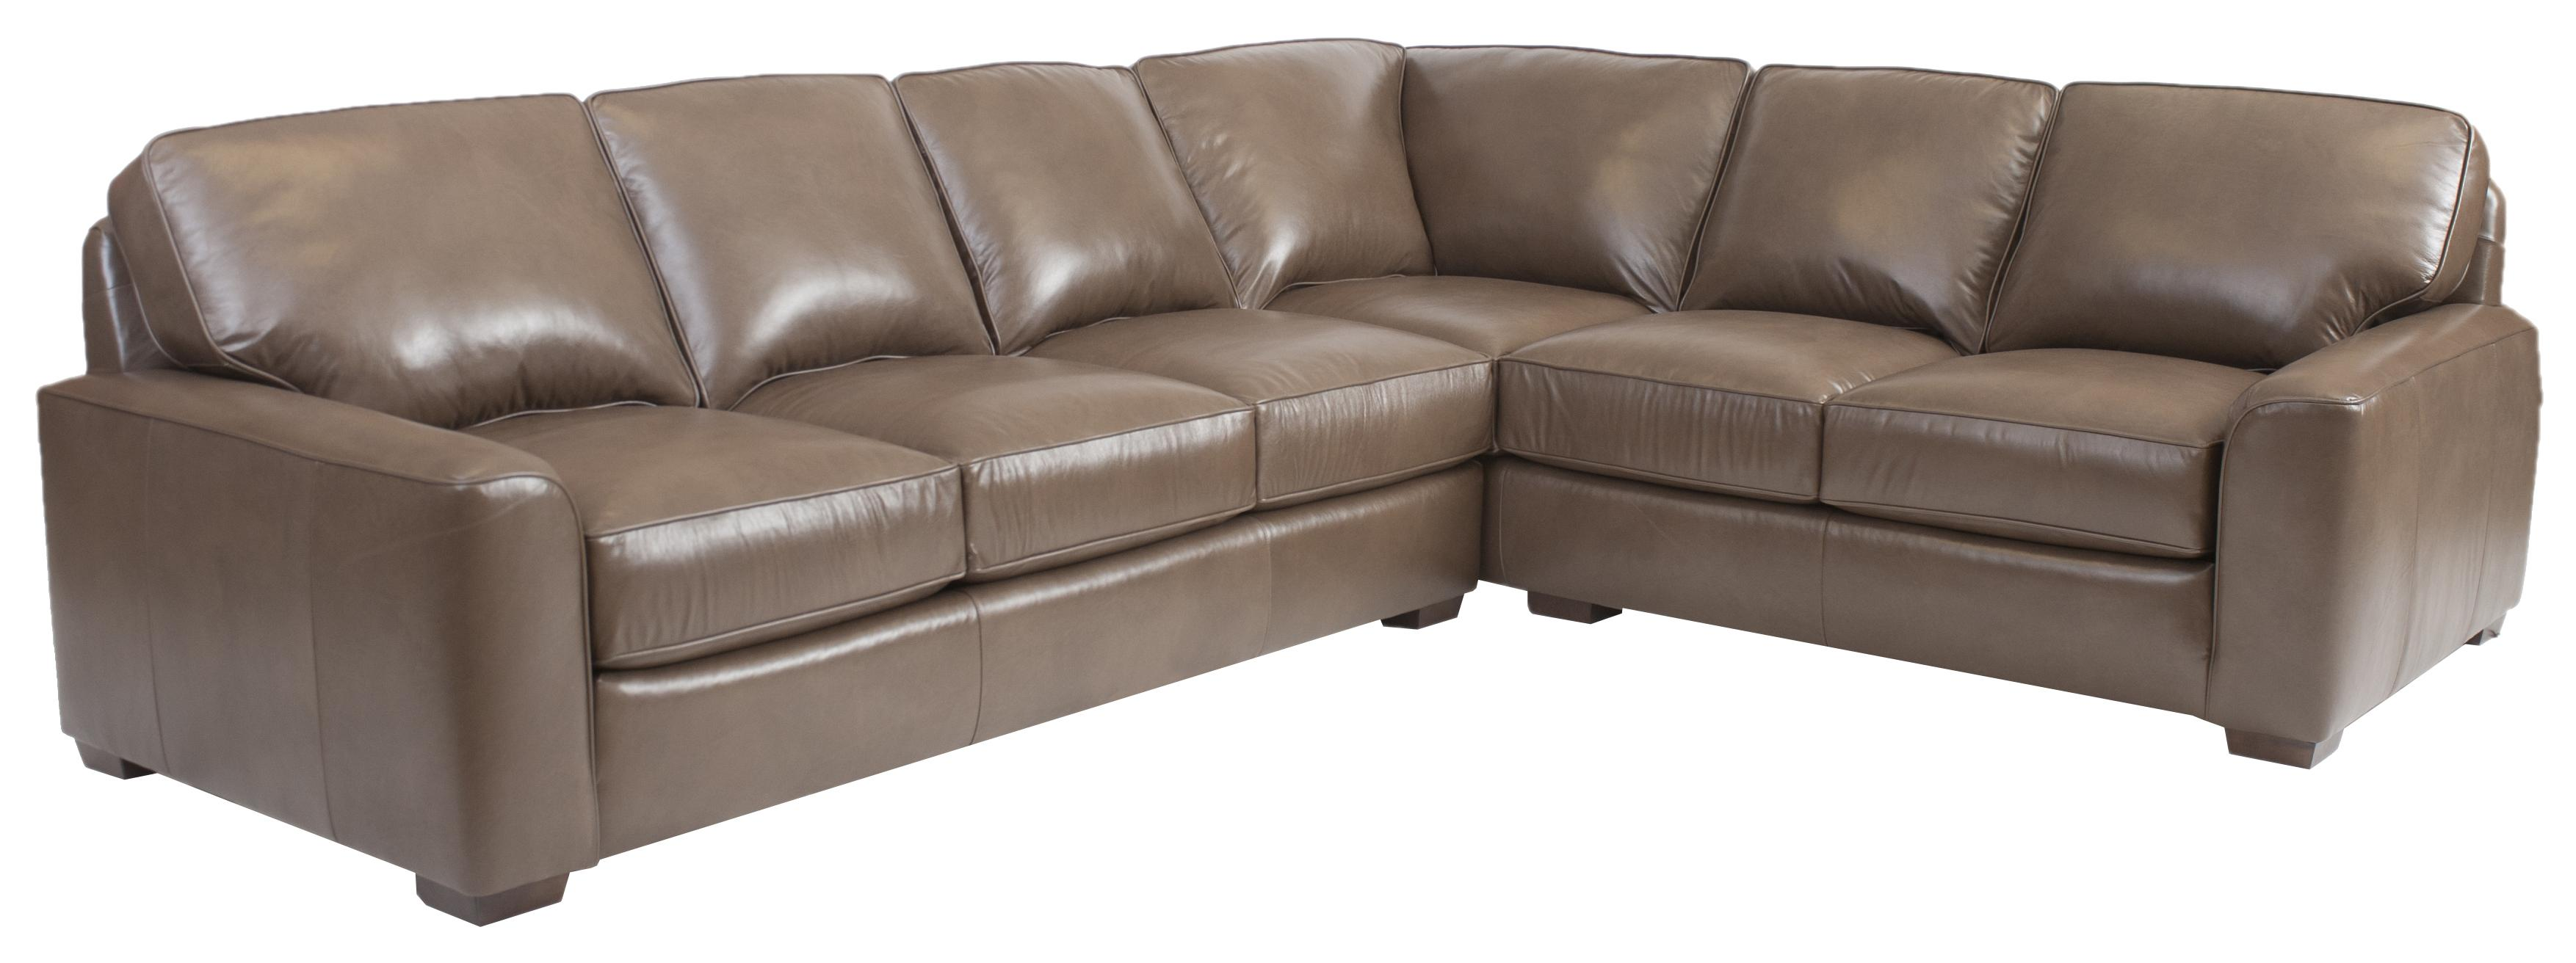 Smith Brothers Build Your Own (8000 Series) Large Corner Sectional Sofa |  Westrich Furniture U0026 Appliances | Sectional Sofas